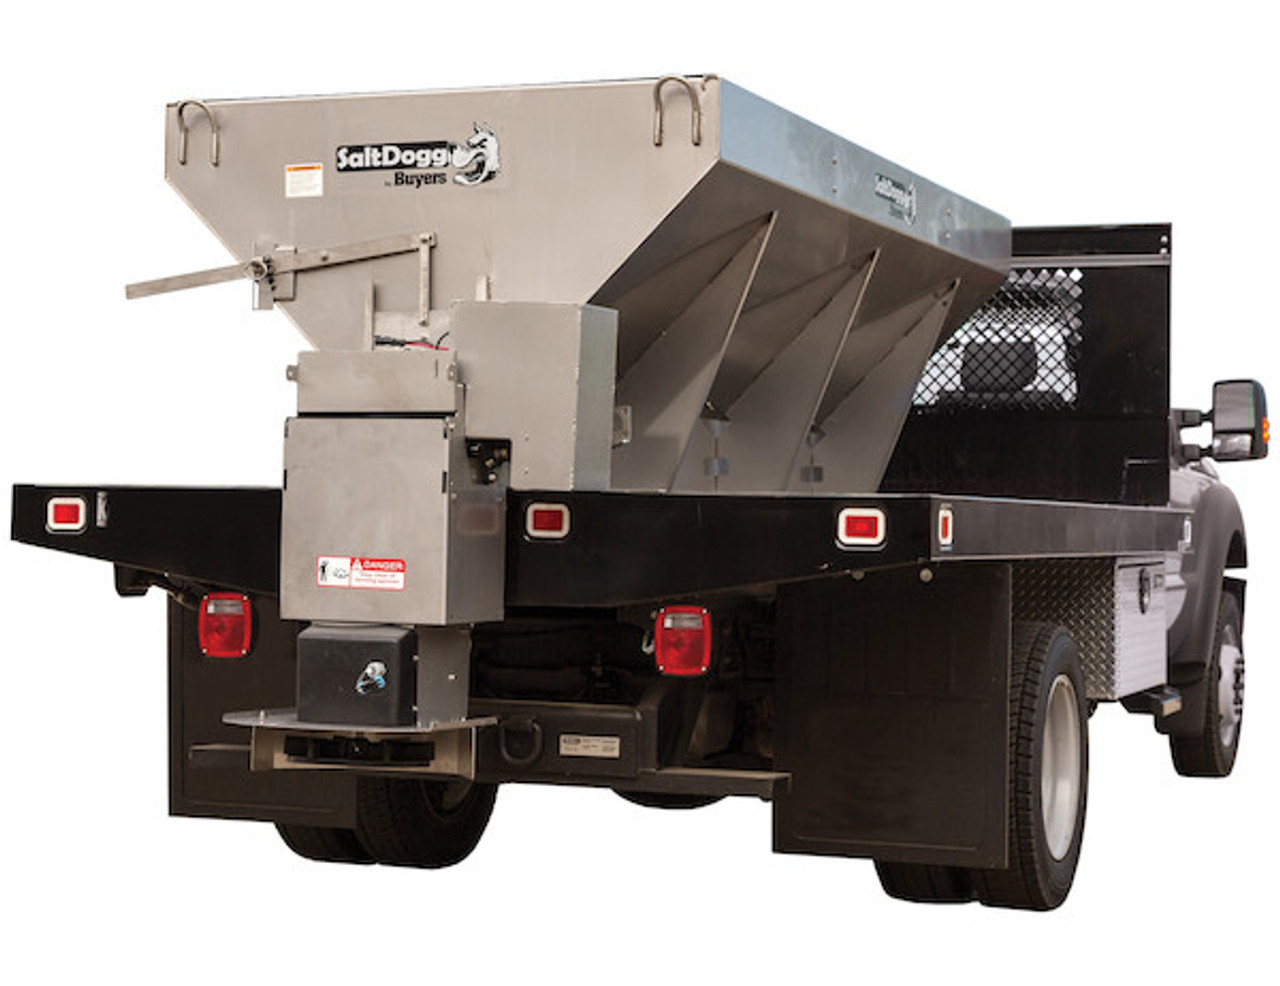 1400455SSE BUYERS SALTDOGG 2.5 CUBIC YARD ELECTRIC CONVEYOR CHAIN SALT SPREADER PARISSUPPLY PARIS SUPPLY SALT